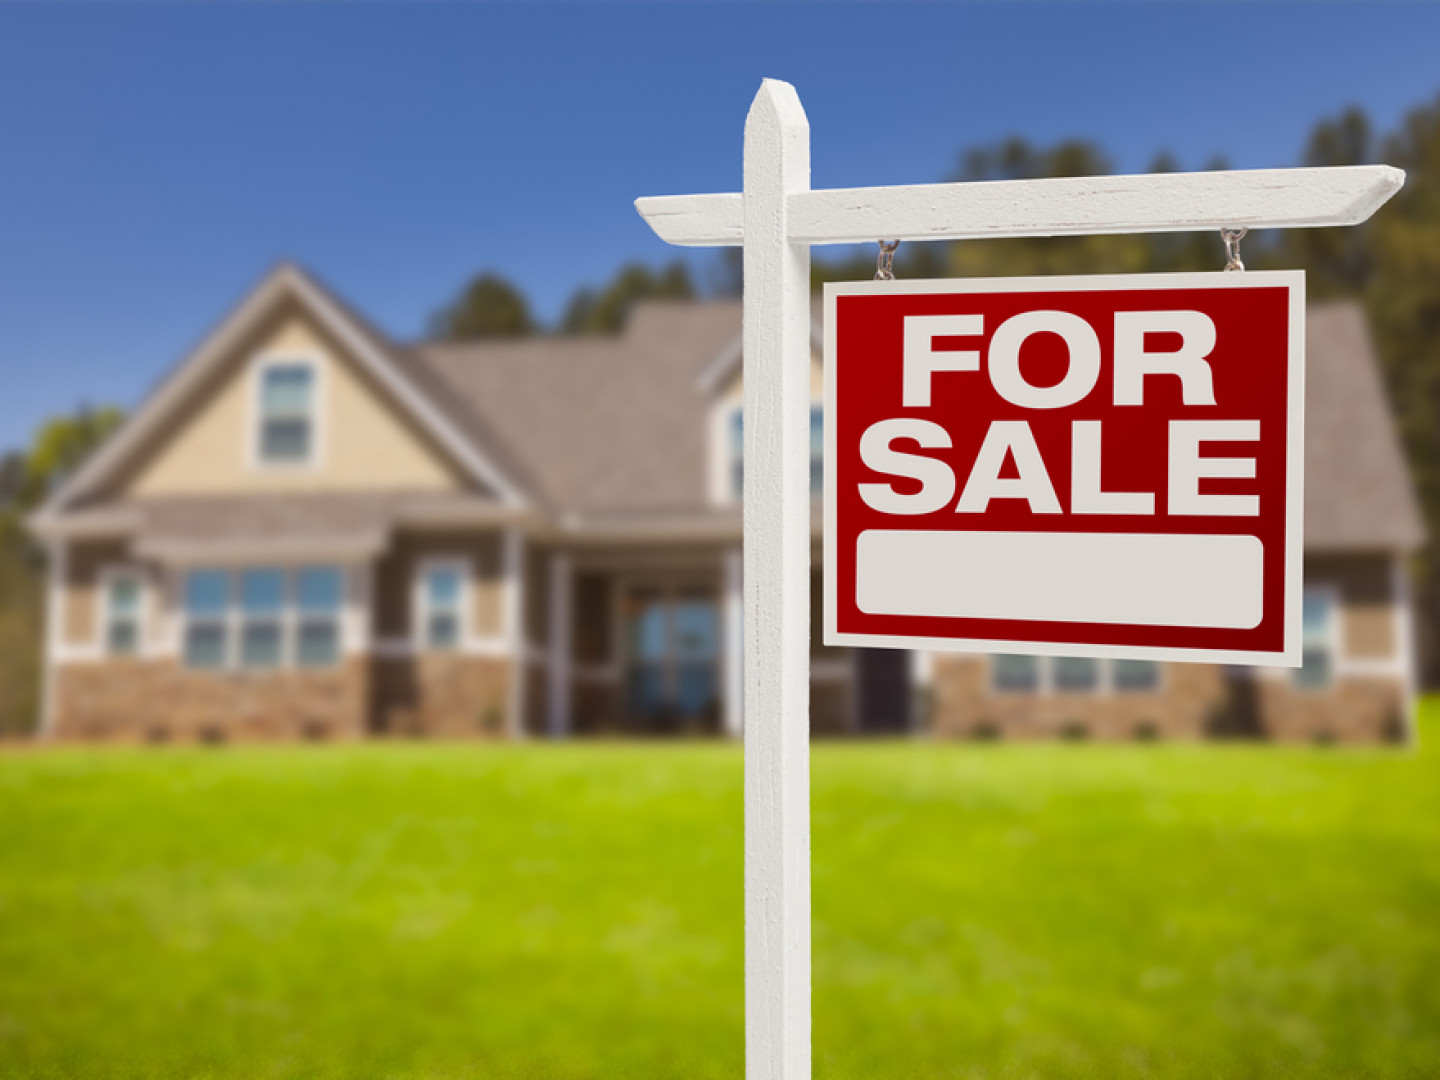 Understanding the process of selling a home